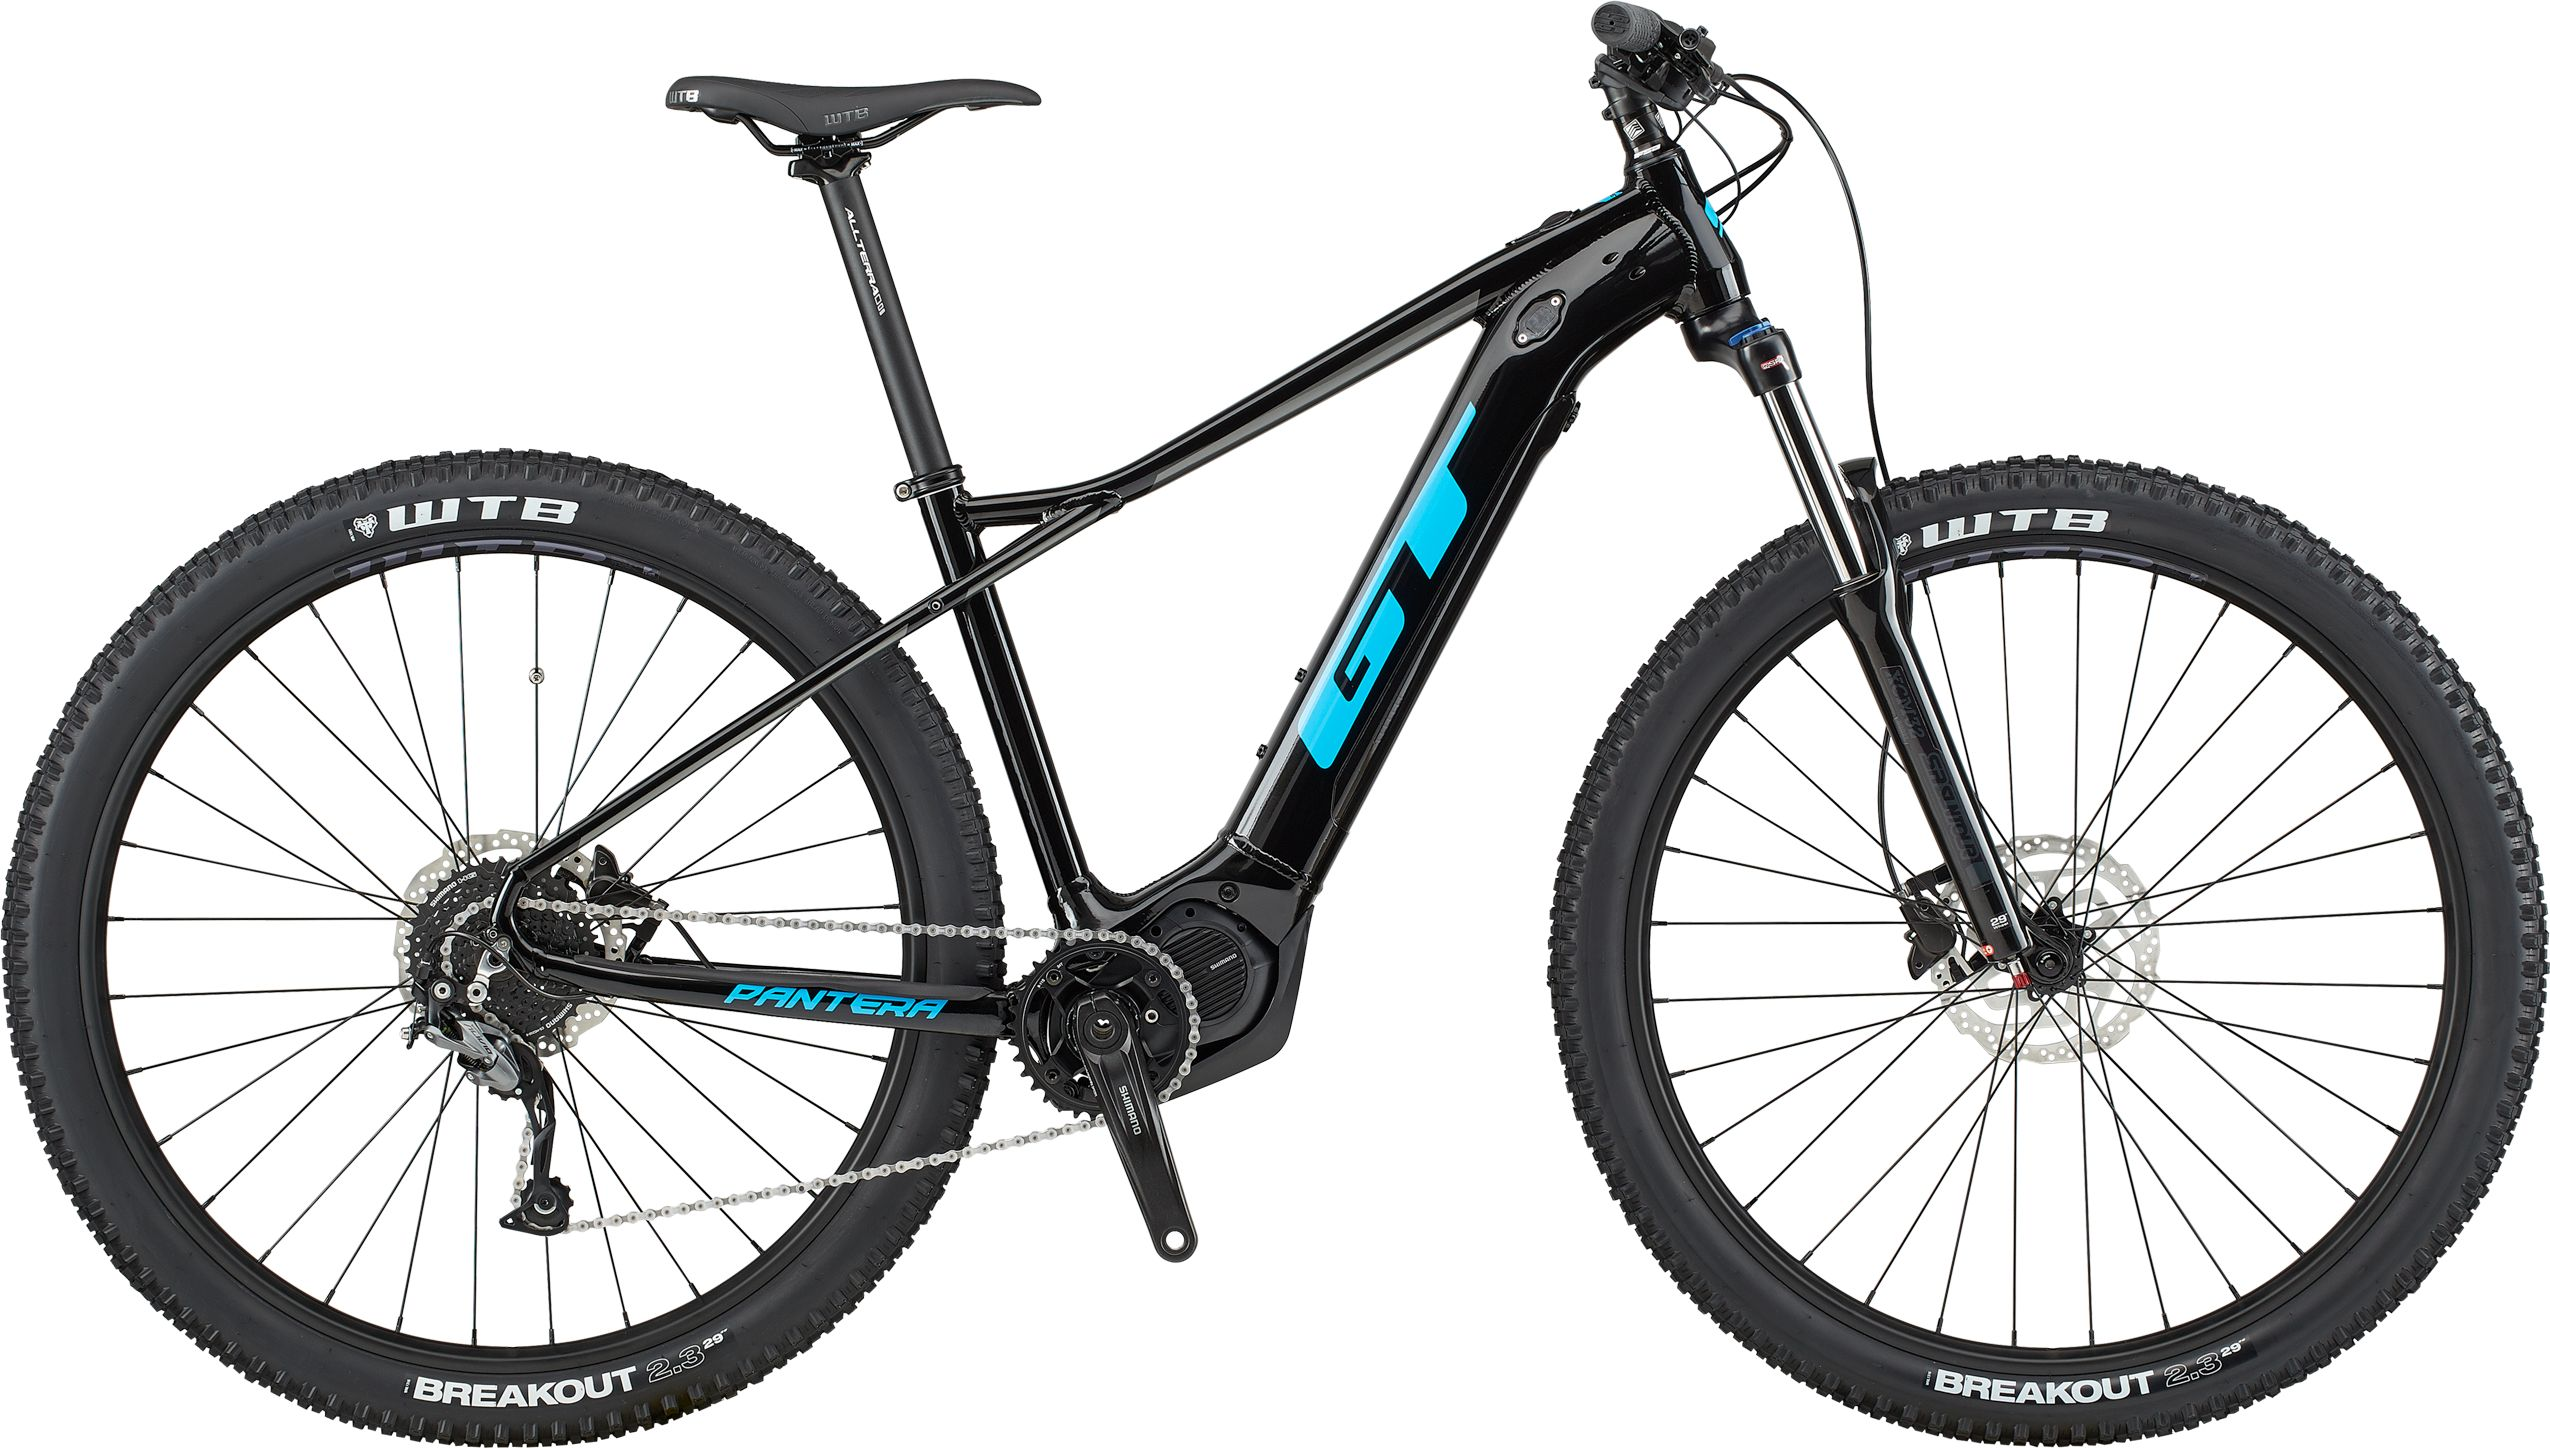 Gt E-pantera Current 29er Electric Mountain Bike 2020 | City-cykler